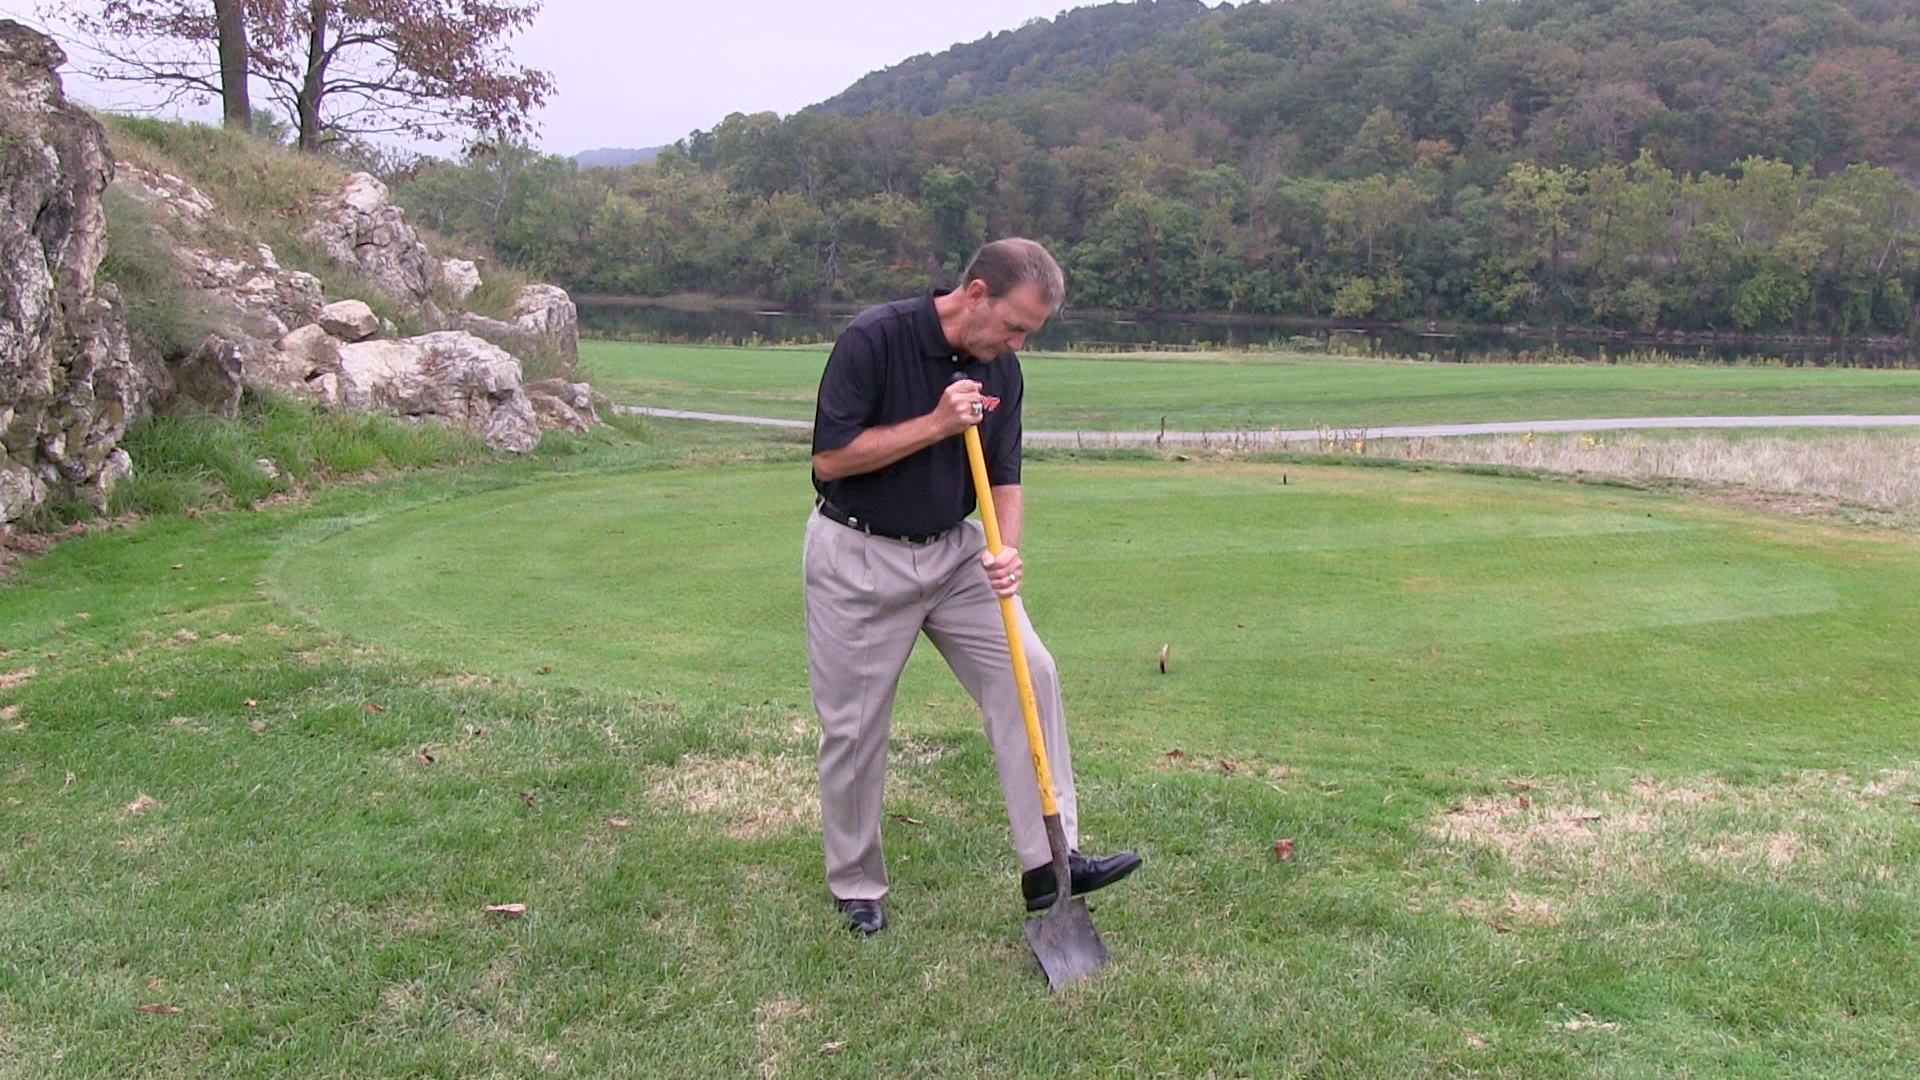 The head golf coach at Virginia Tech, Jay Hardwick, uses a shovel to dig up some soil. He's checking to see whether there are any layyers of clippings and dead roots.